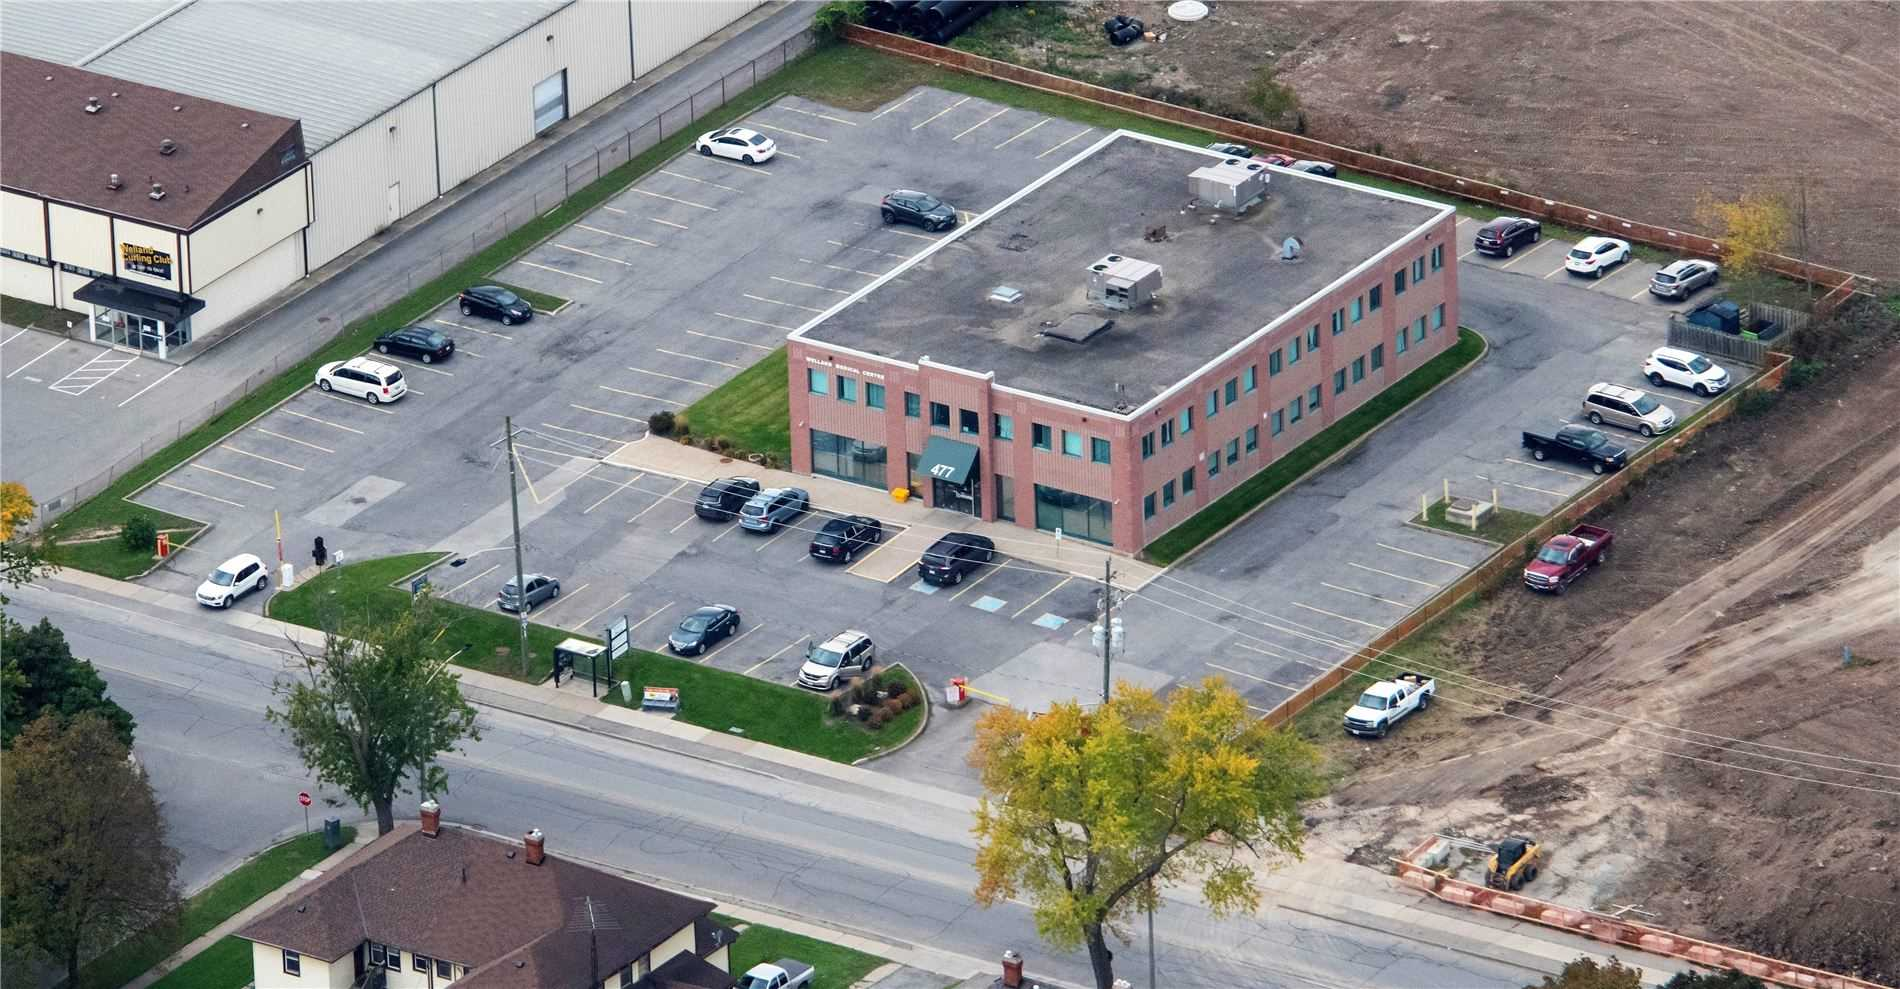 Welland Medical Centre Is Situated In A Populated Residential Neighborhood On King St. And Lincoln St. The Building Is Minutes Away From Niagara Health Welland And Adjacent To A Future Retirement Home And Retail Plaza. Welland Medical Centre Is A Two Storey Building That Features A Surface Parking For Patients And Tenants.